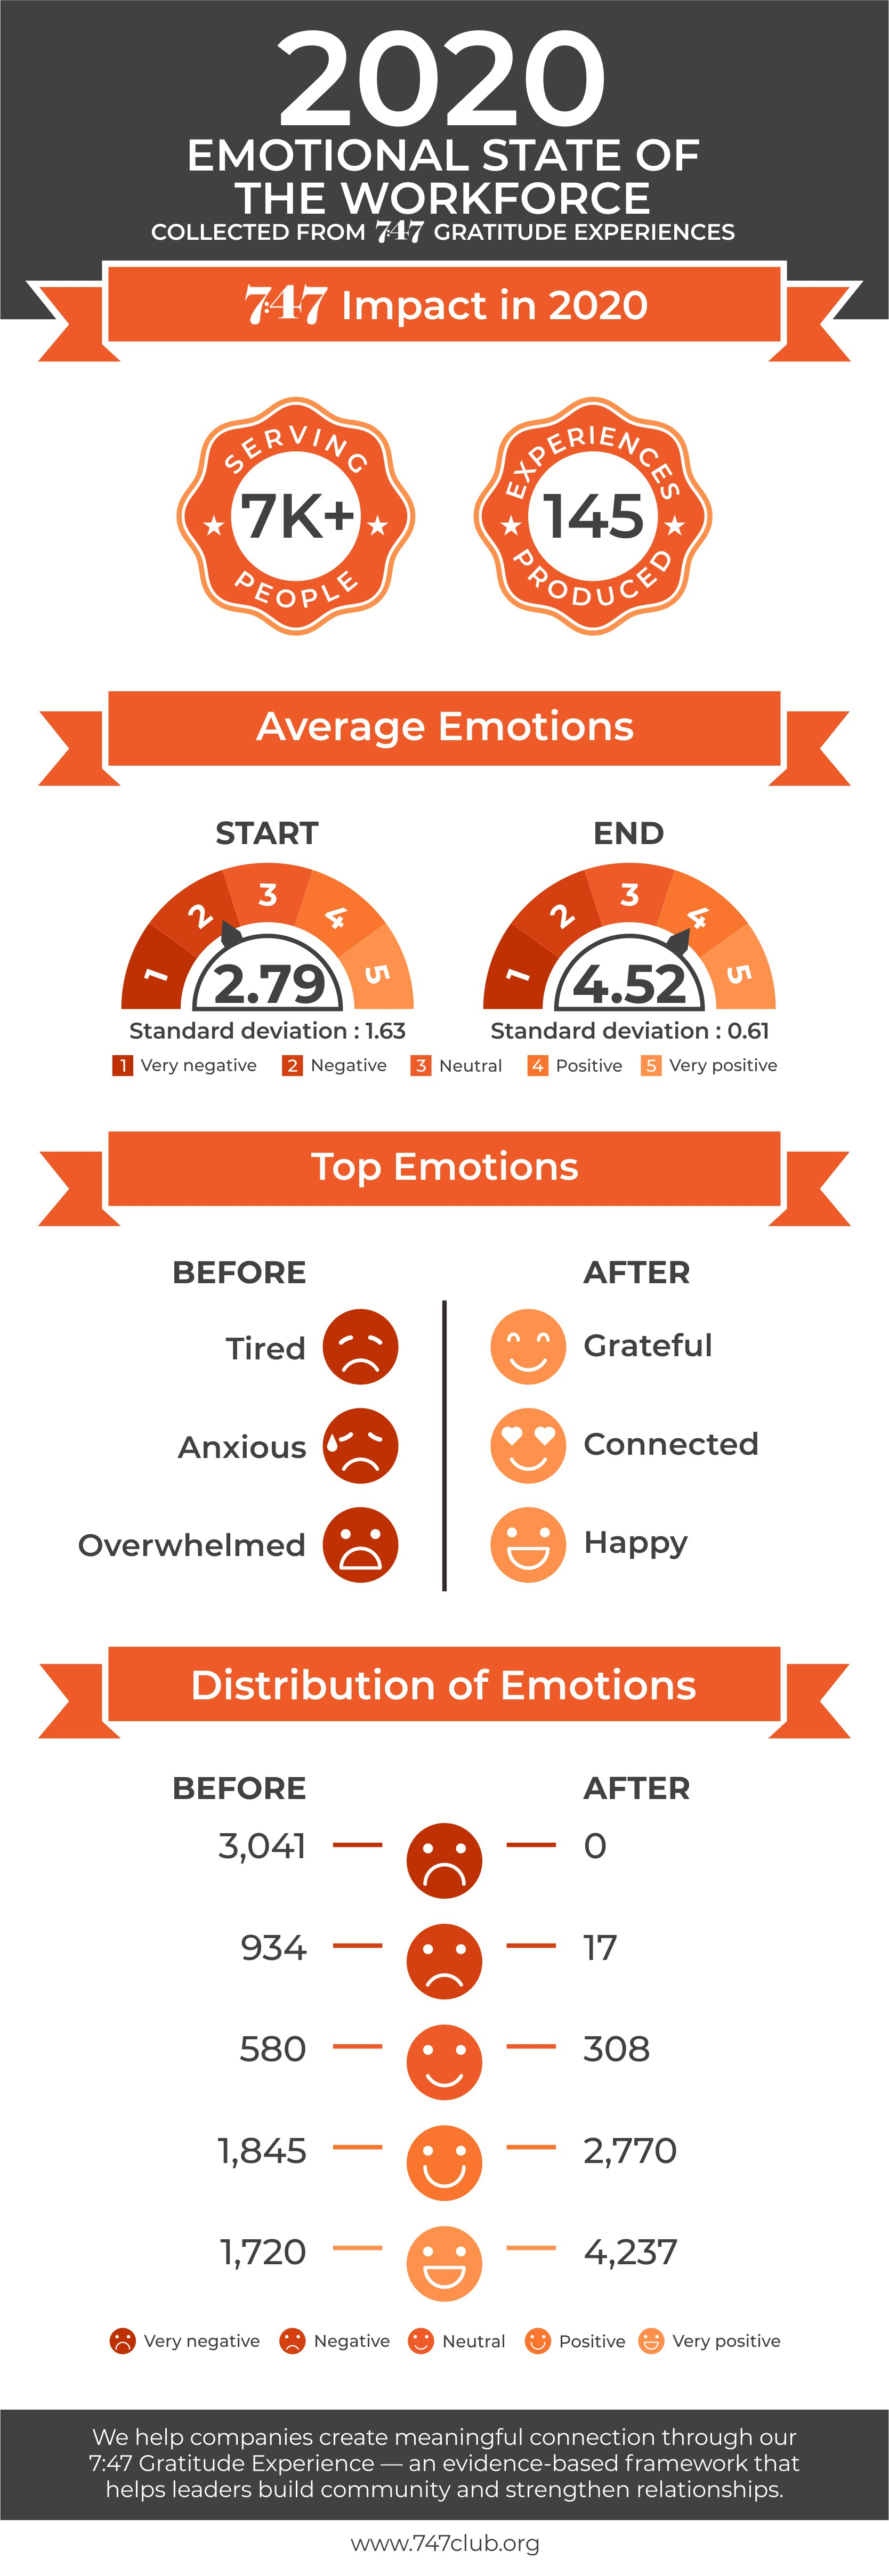 We need an infographic that shows the emotional state of the workforce in 2020